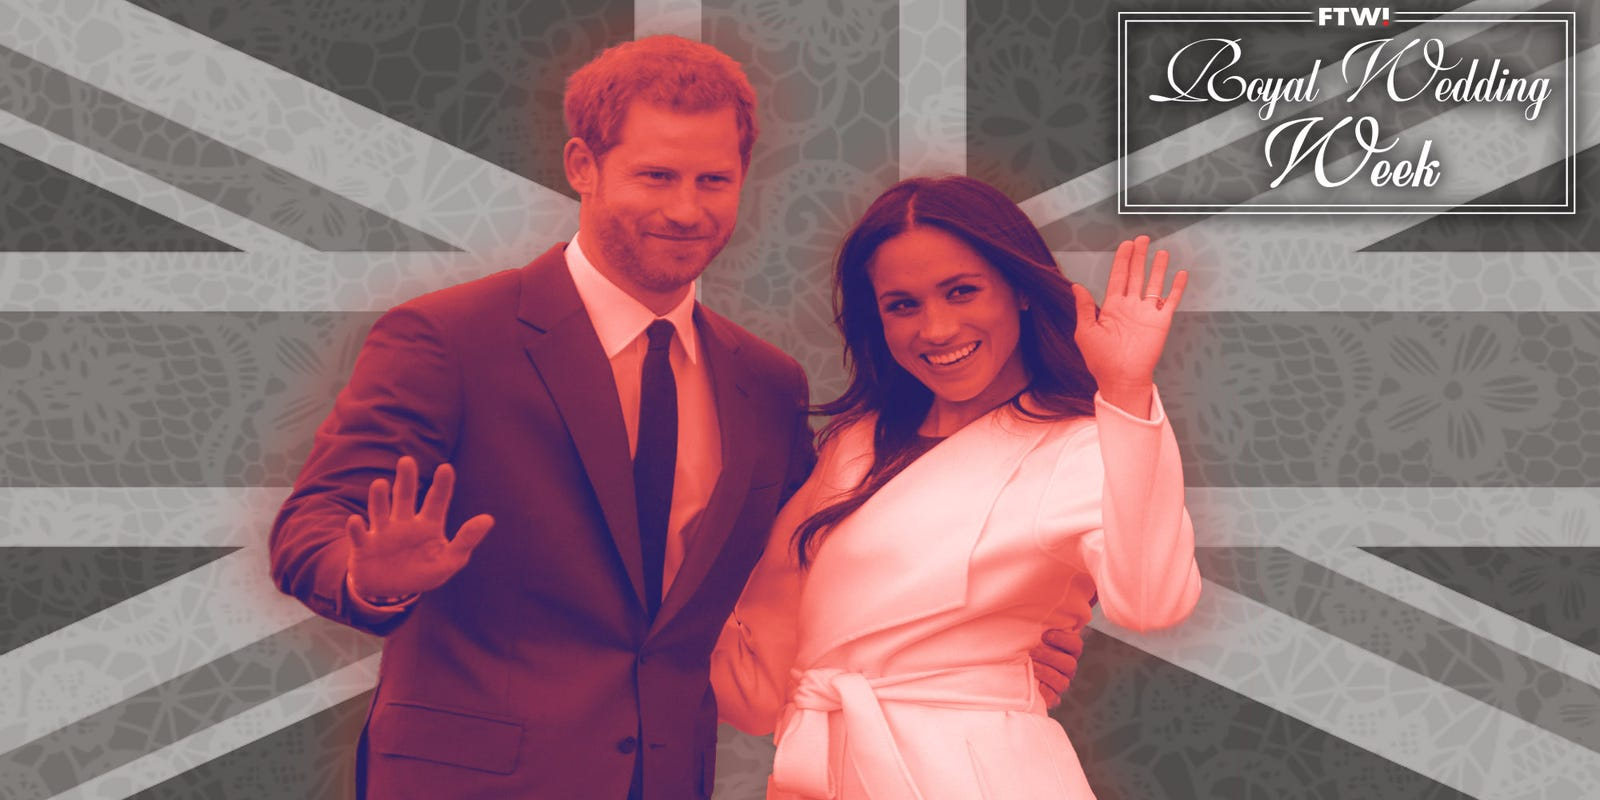 Prince Harry drove Meghan Markle to wedding reception in classic Jaguar